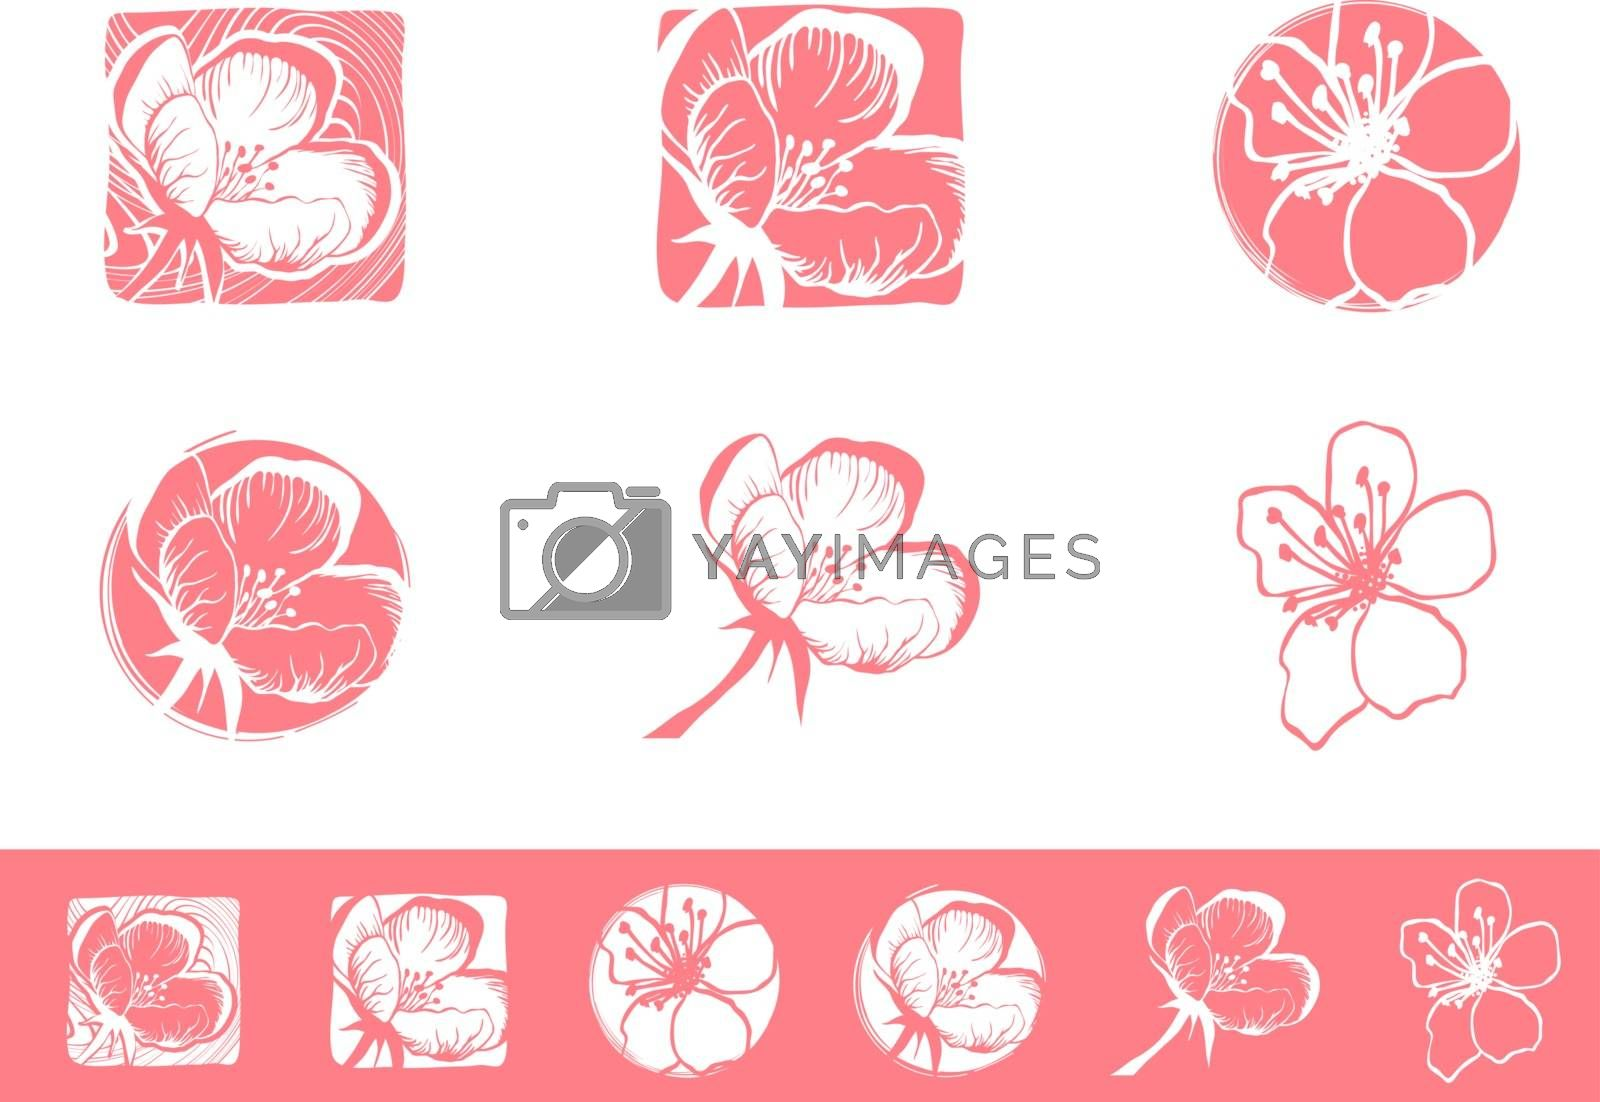 Cherry Blossom Logo Design Set by razvodovska